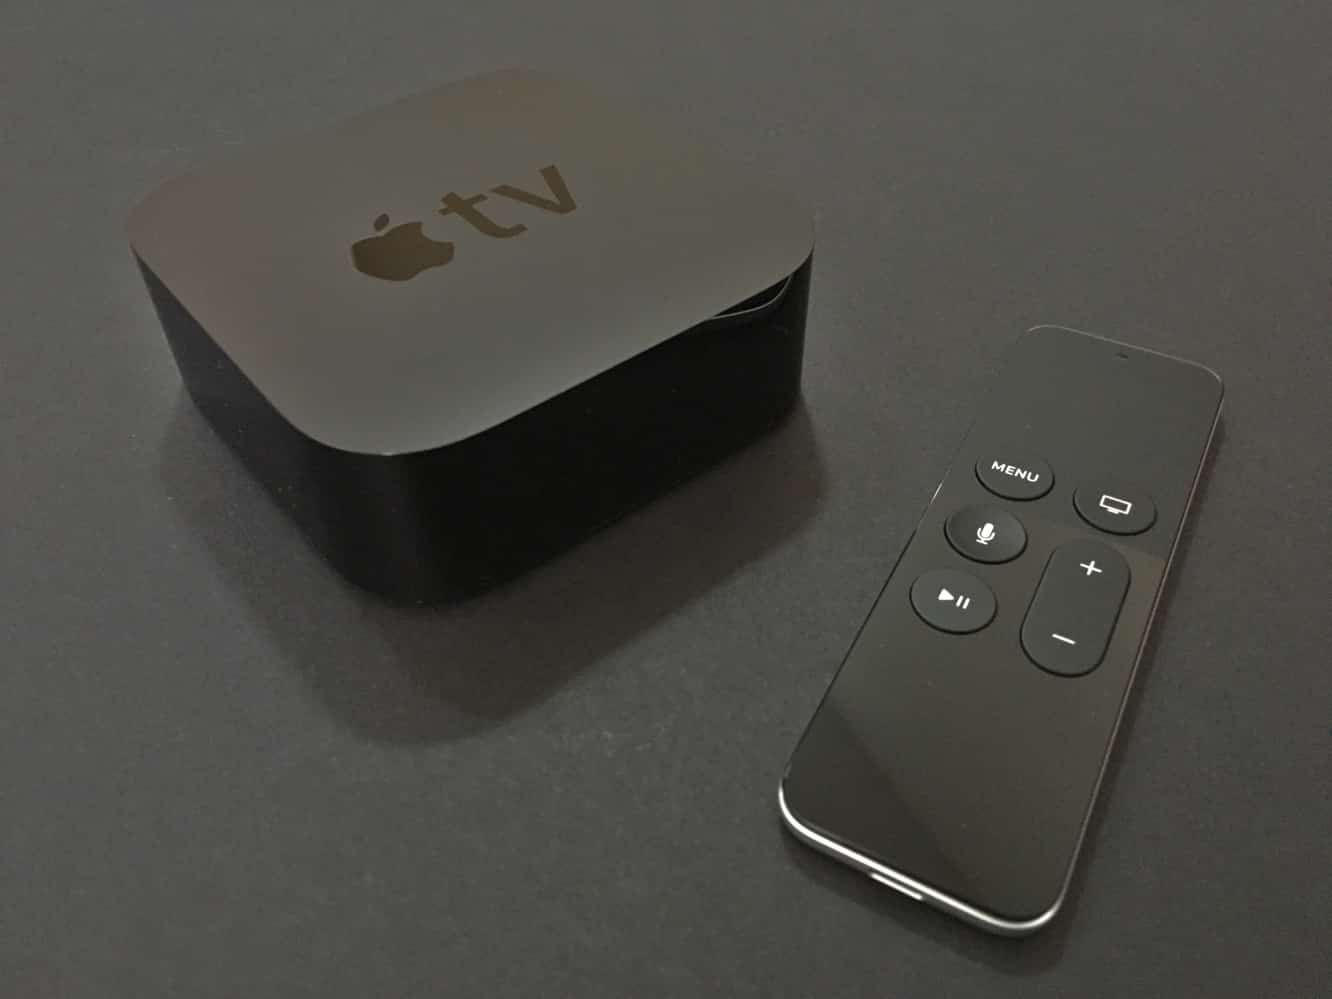 Facebook's talks with MLB raise possibility that game streams could come to Apple TV